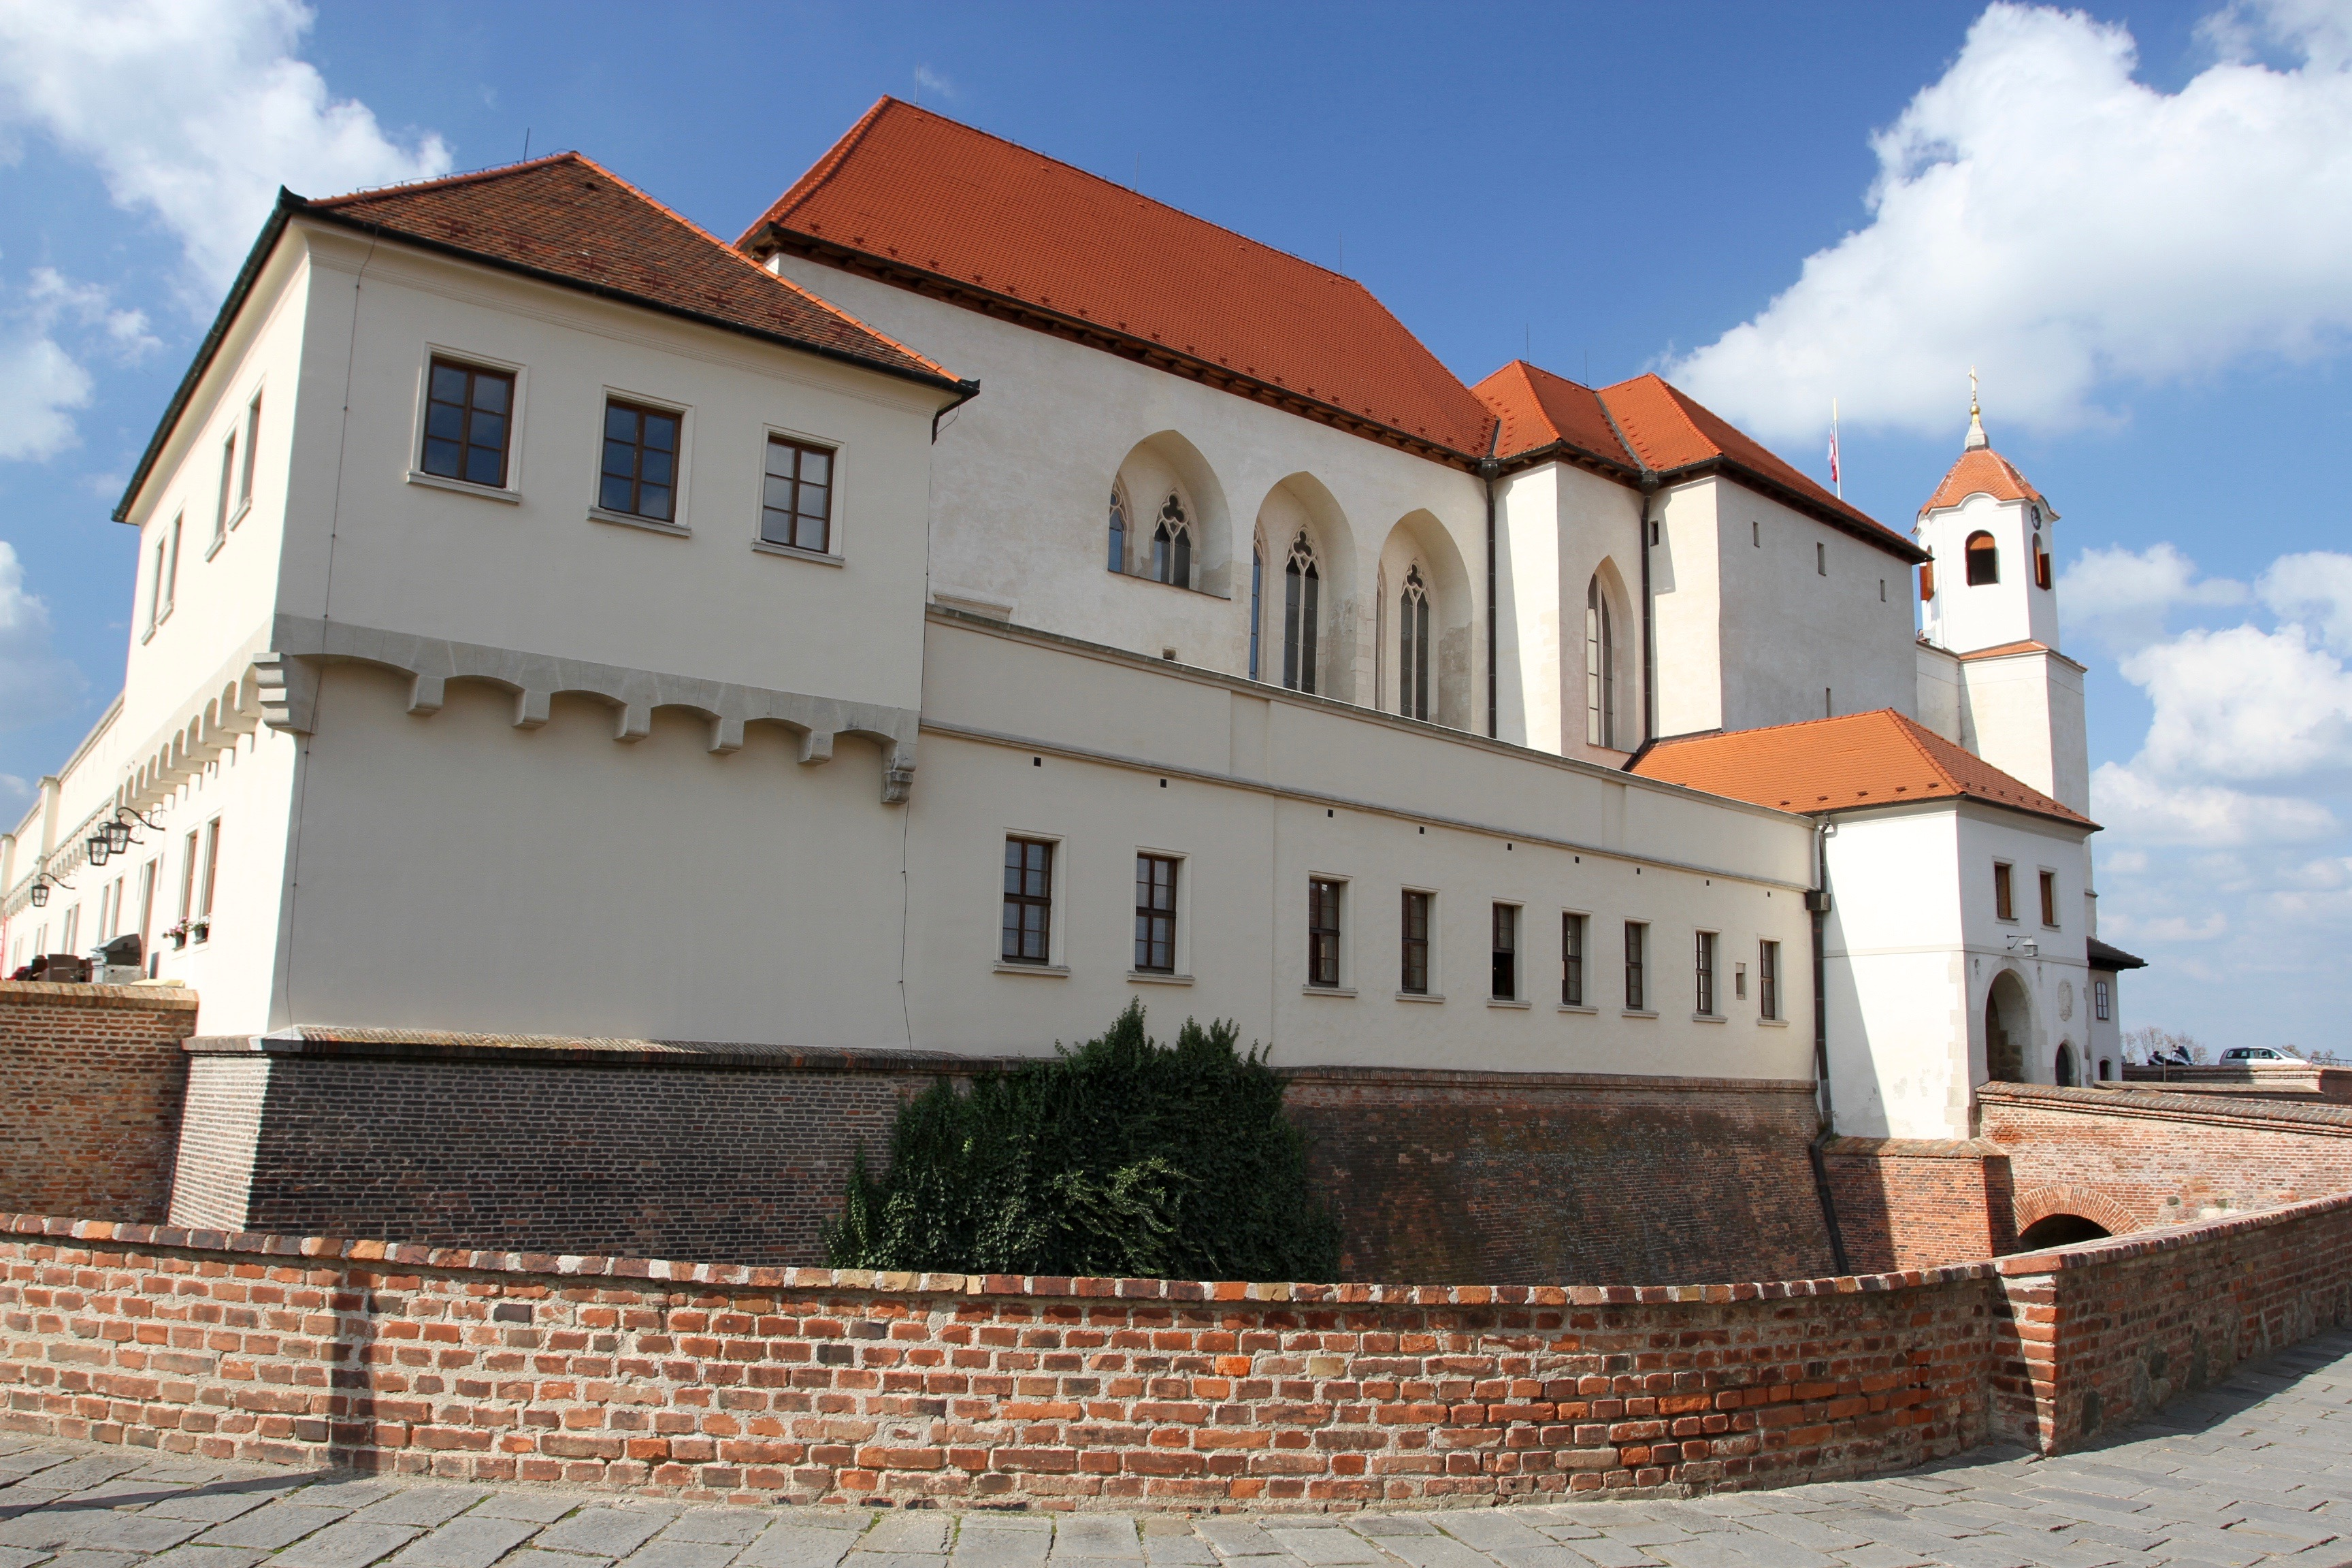 dating in brno czech republic In the city's hradčany neighborhood and dating  a similar effect was created at the brno ossuary where the  the national library of the czech republic, .